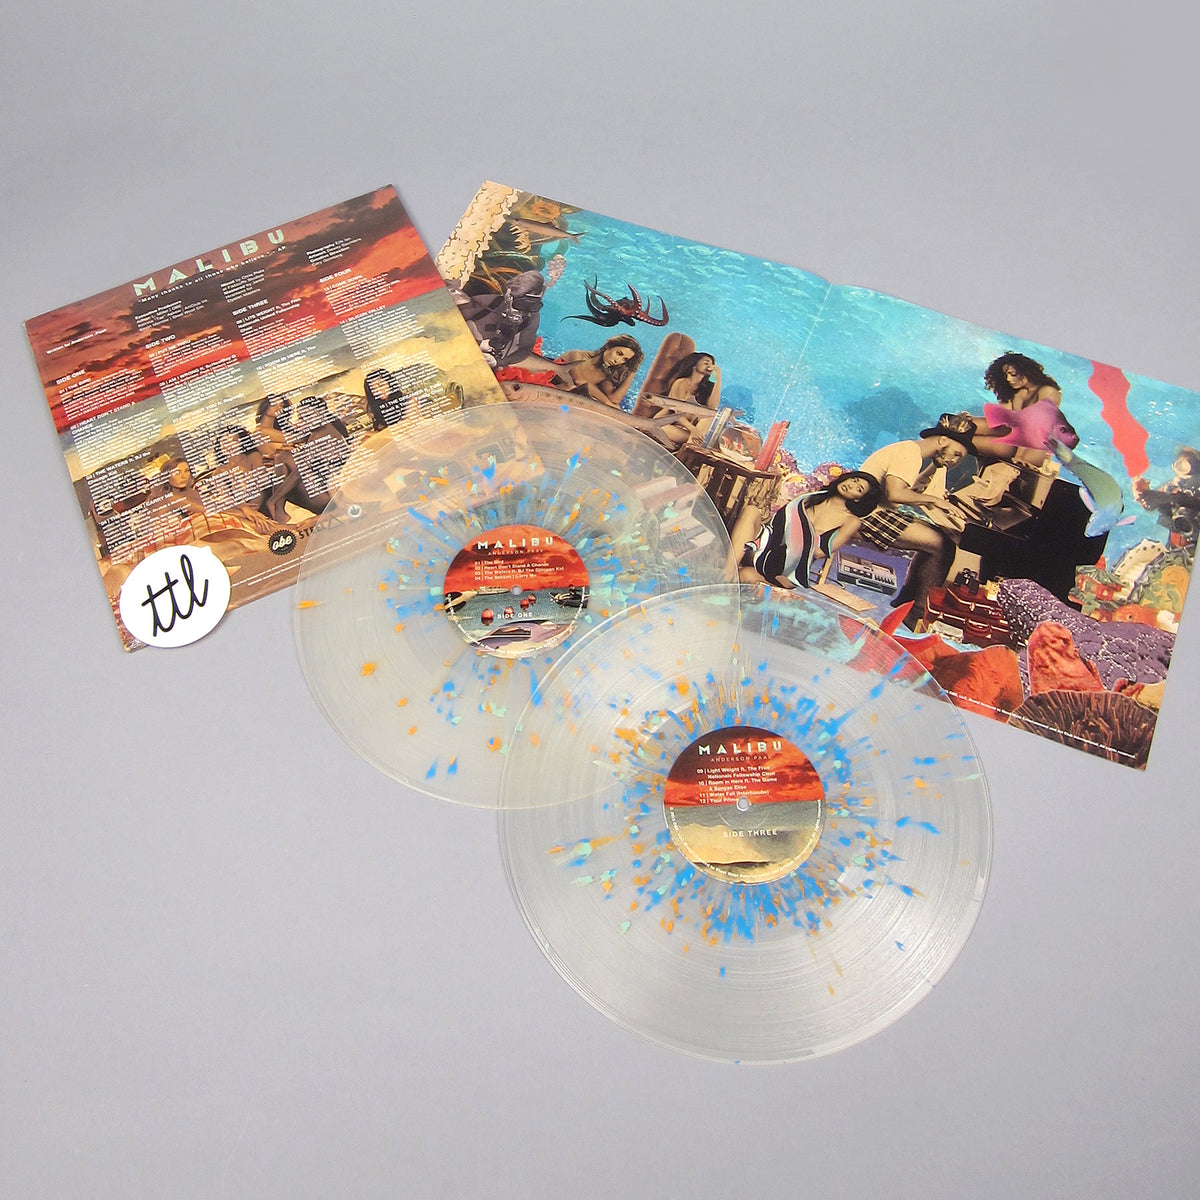 Anderson .Paak: Malibu (Clear Splatter Colored Vinyl) Vinyl 2LP - Turntable Lab Exclusive